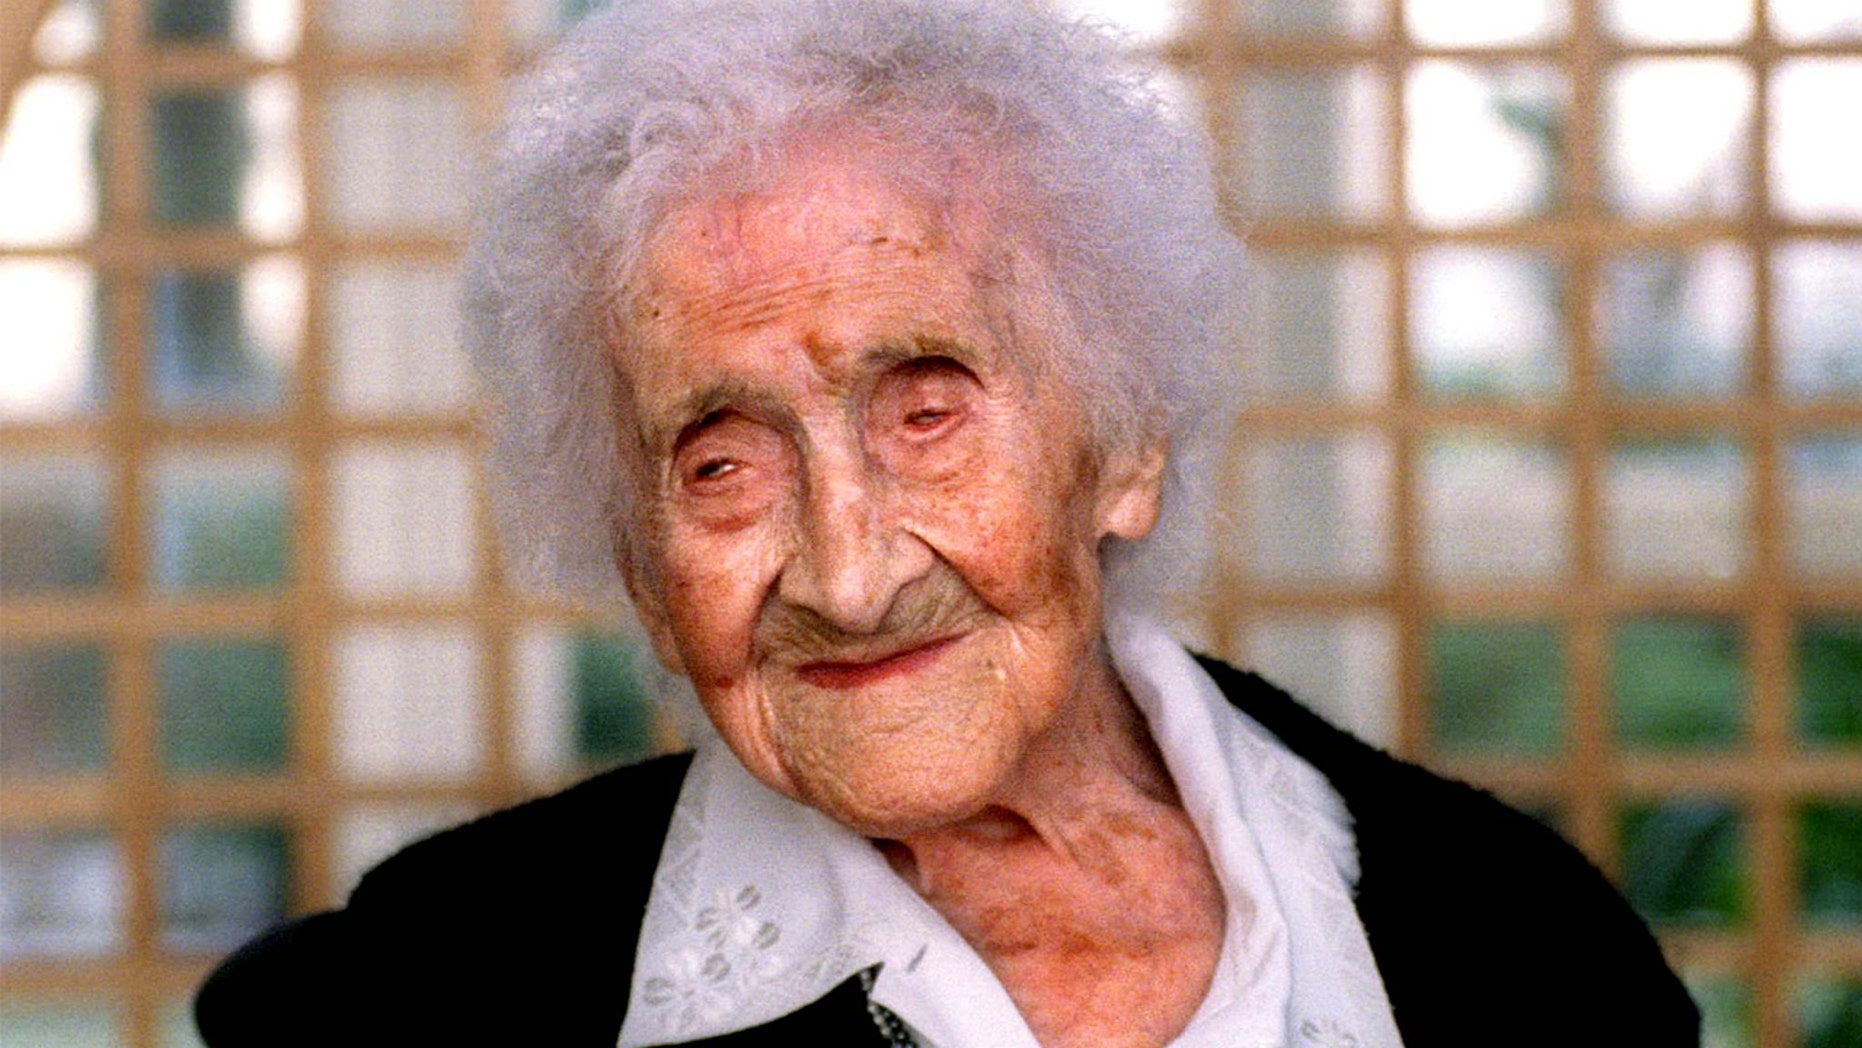 Jeanne Calment holds the record for being the world's oldest person. She died in 1997 at the age of 122.